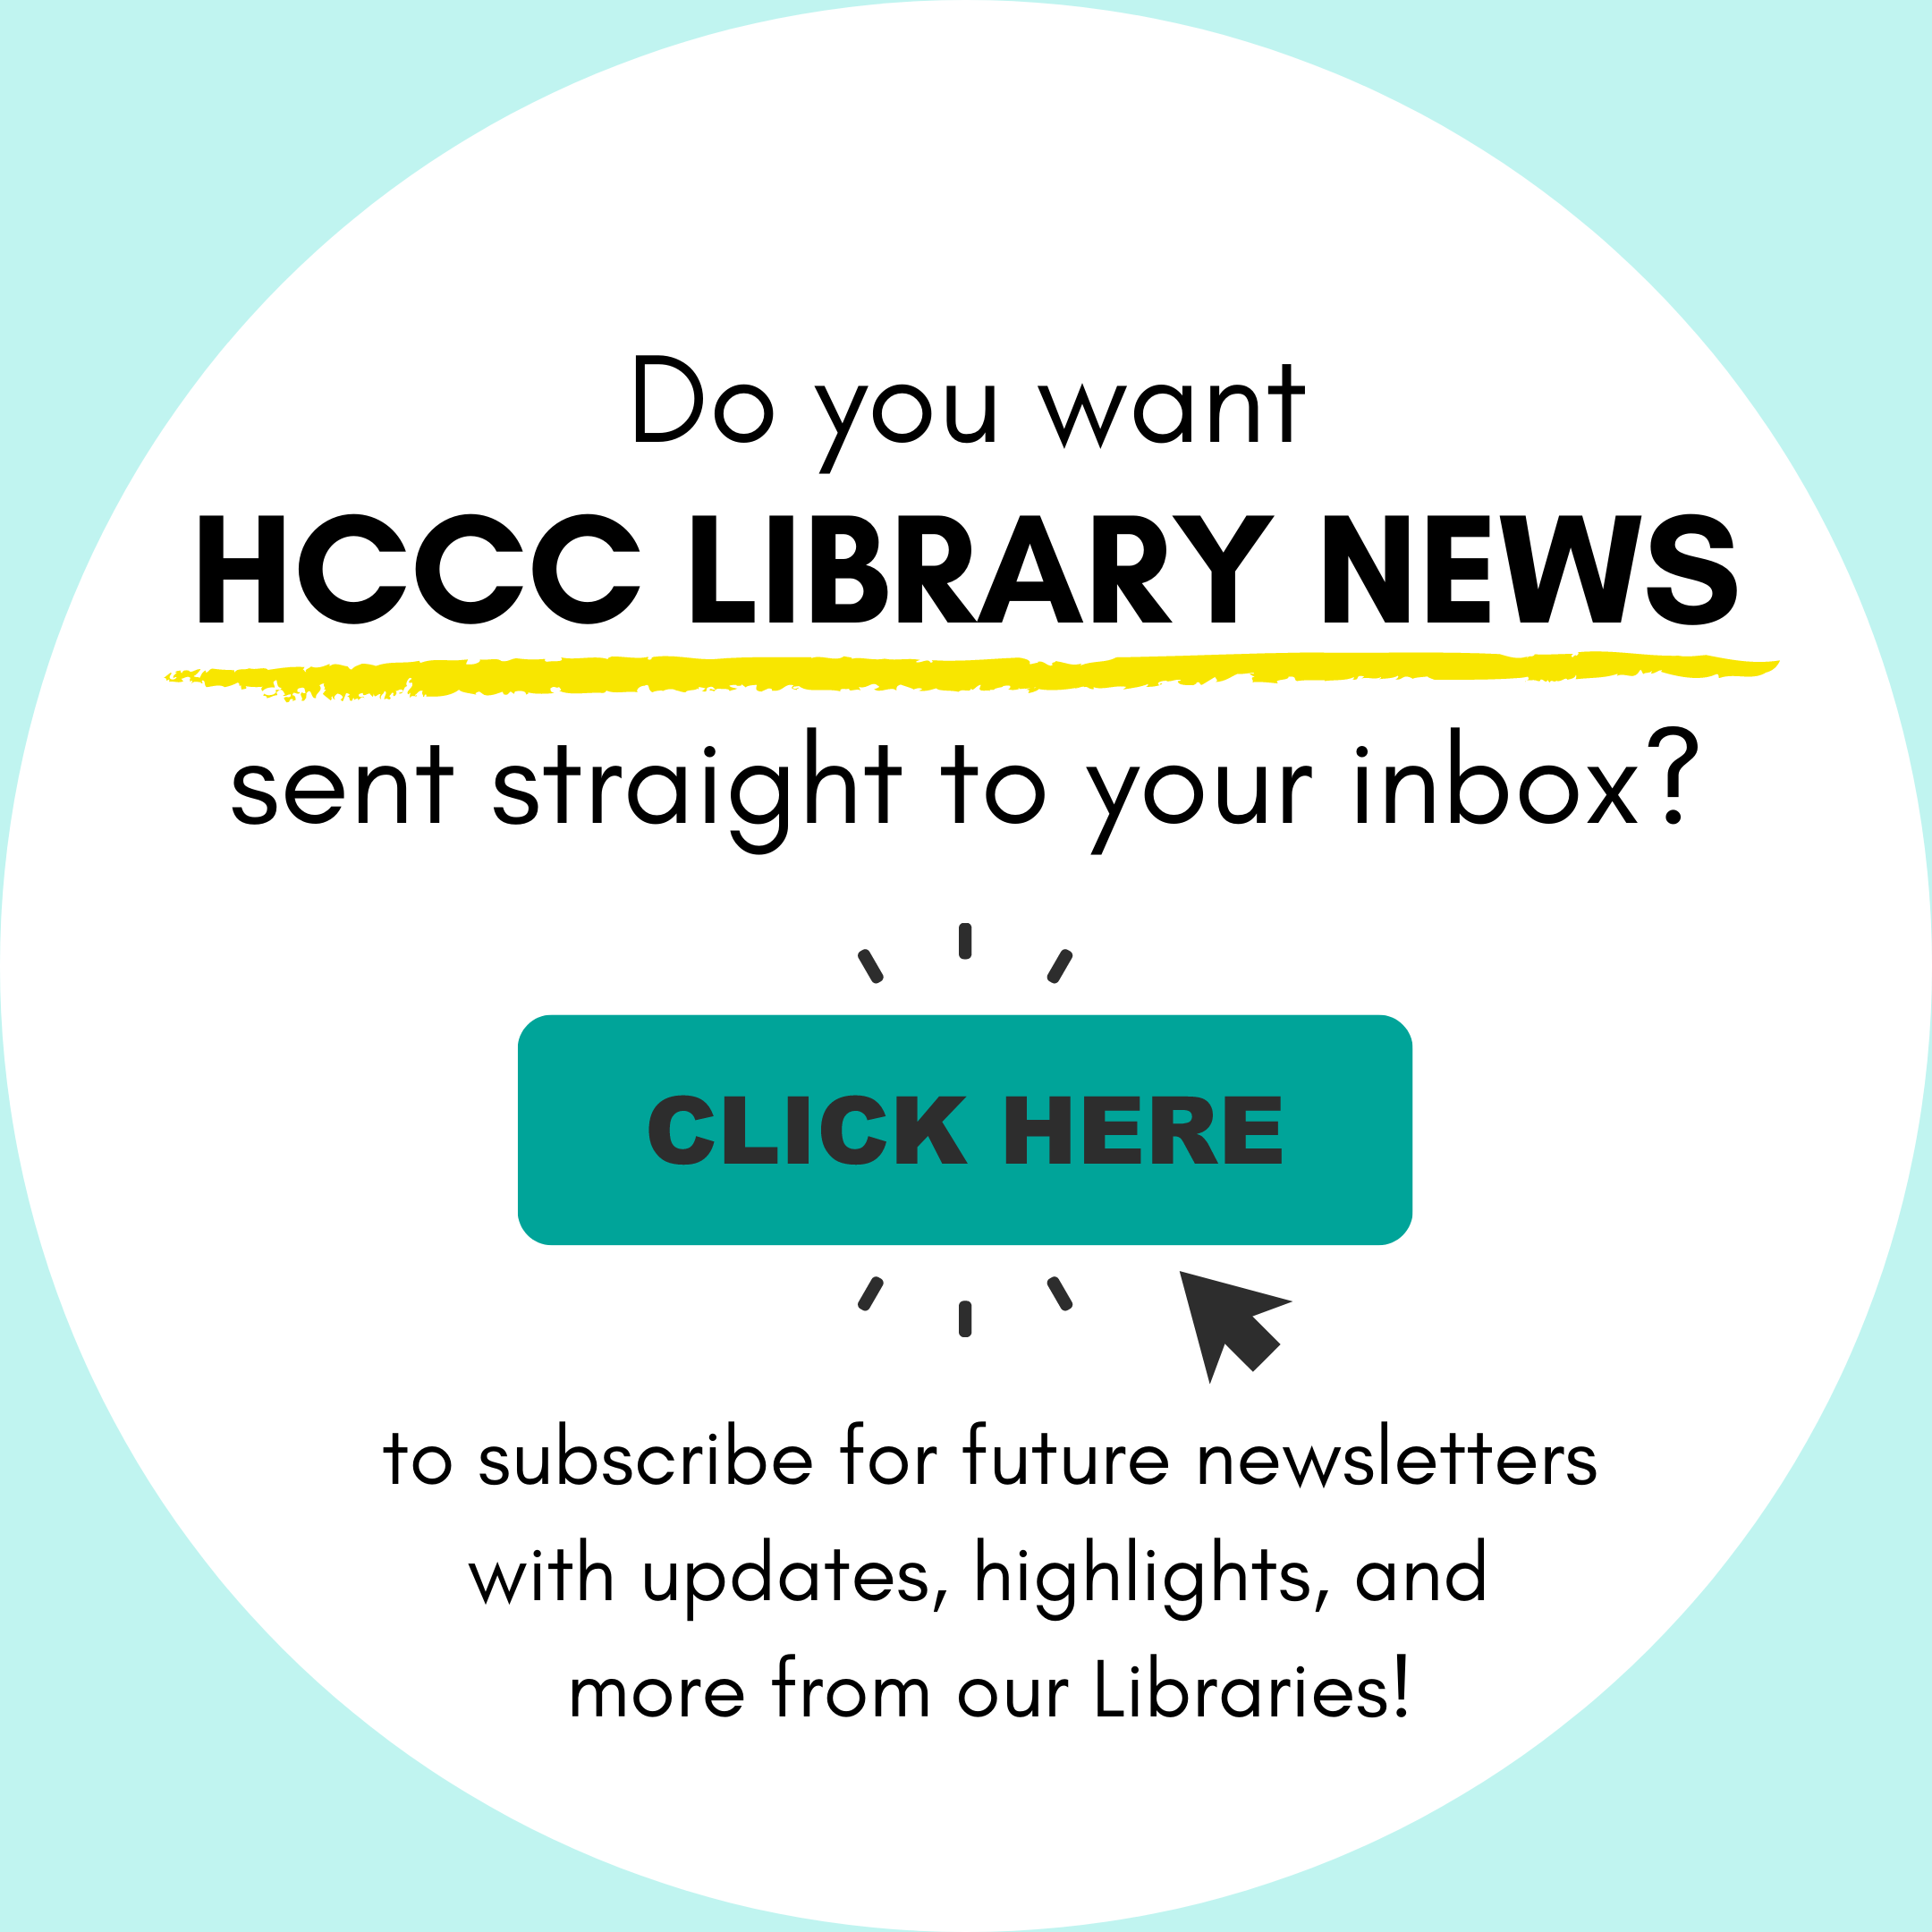 Subscribe to our library newsletter